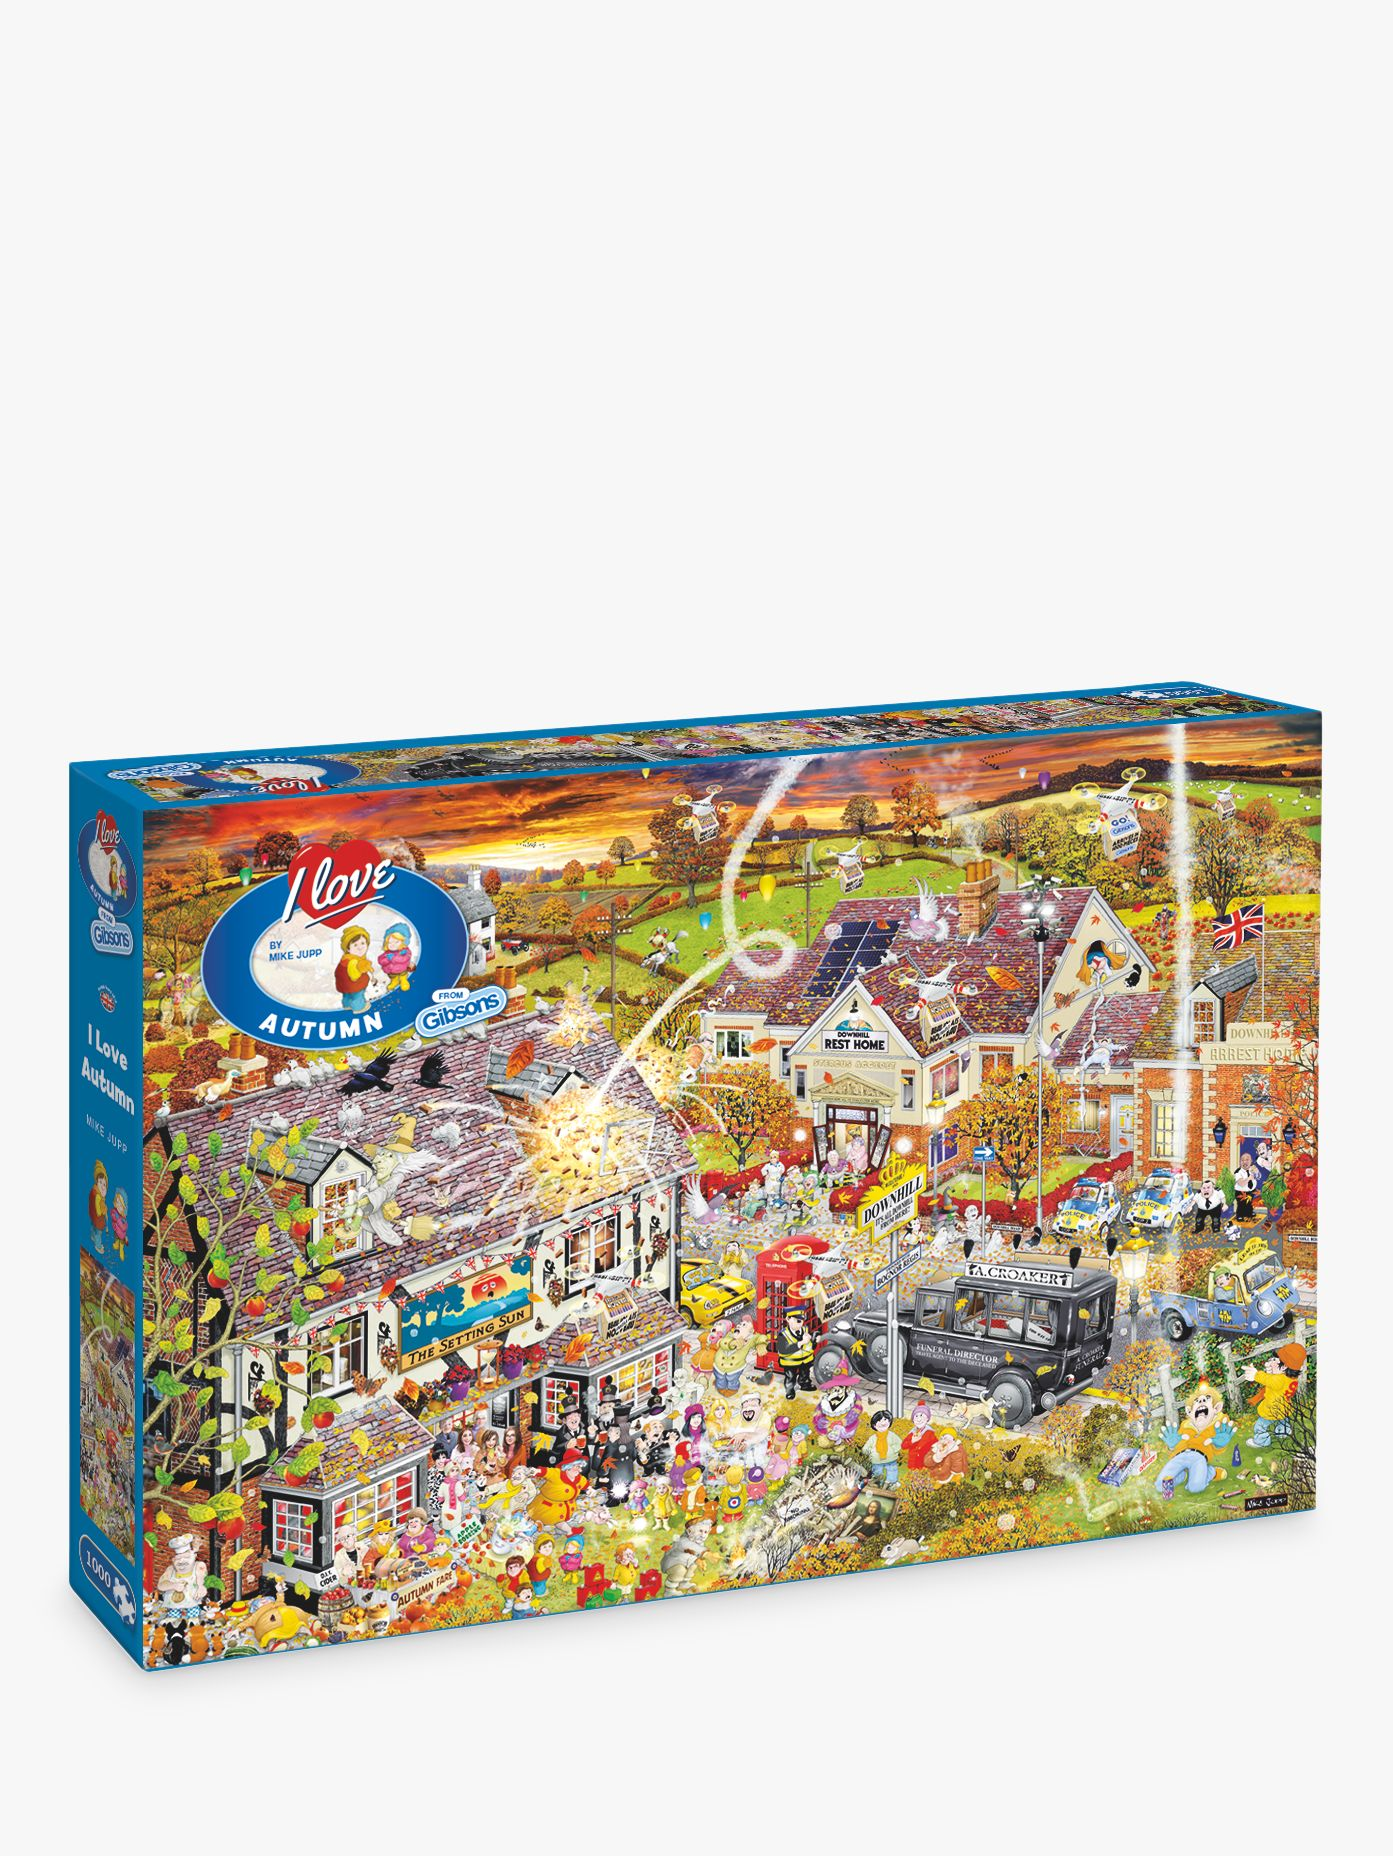 Gibsons Gibsons I Love Autumn Jigsaw Puzzle, 1000 Pieces